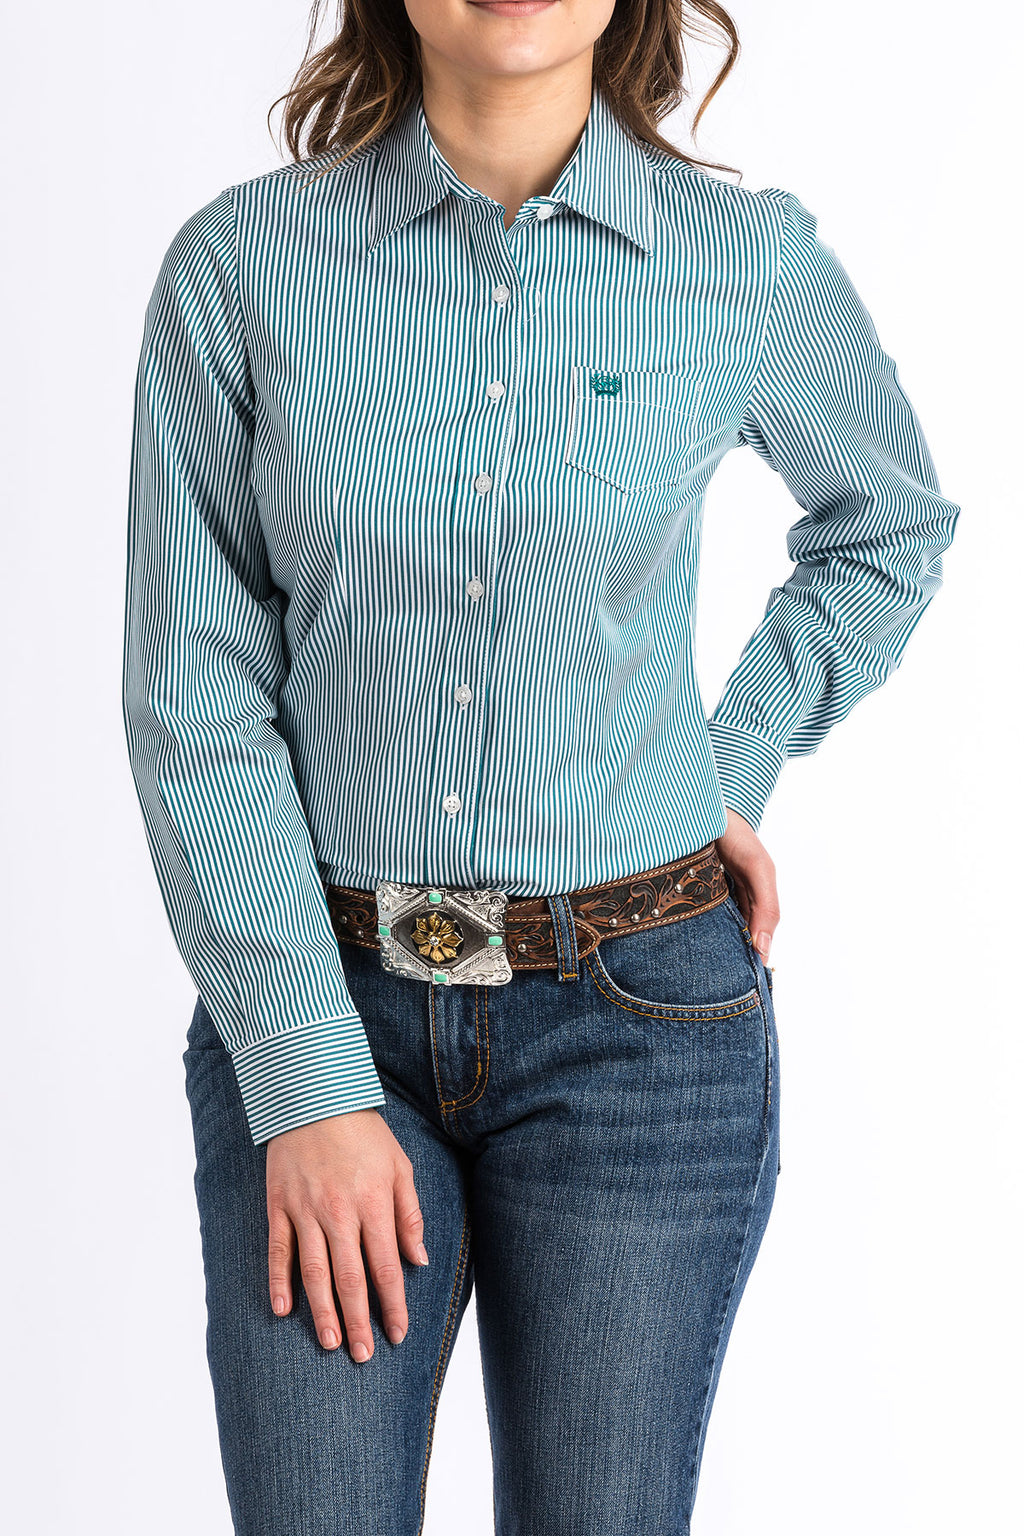 CINCH Women's Teal and White Stripe Button-Down Western Shirt